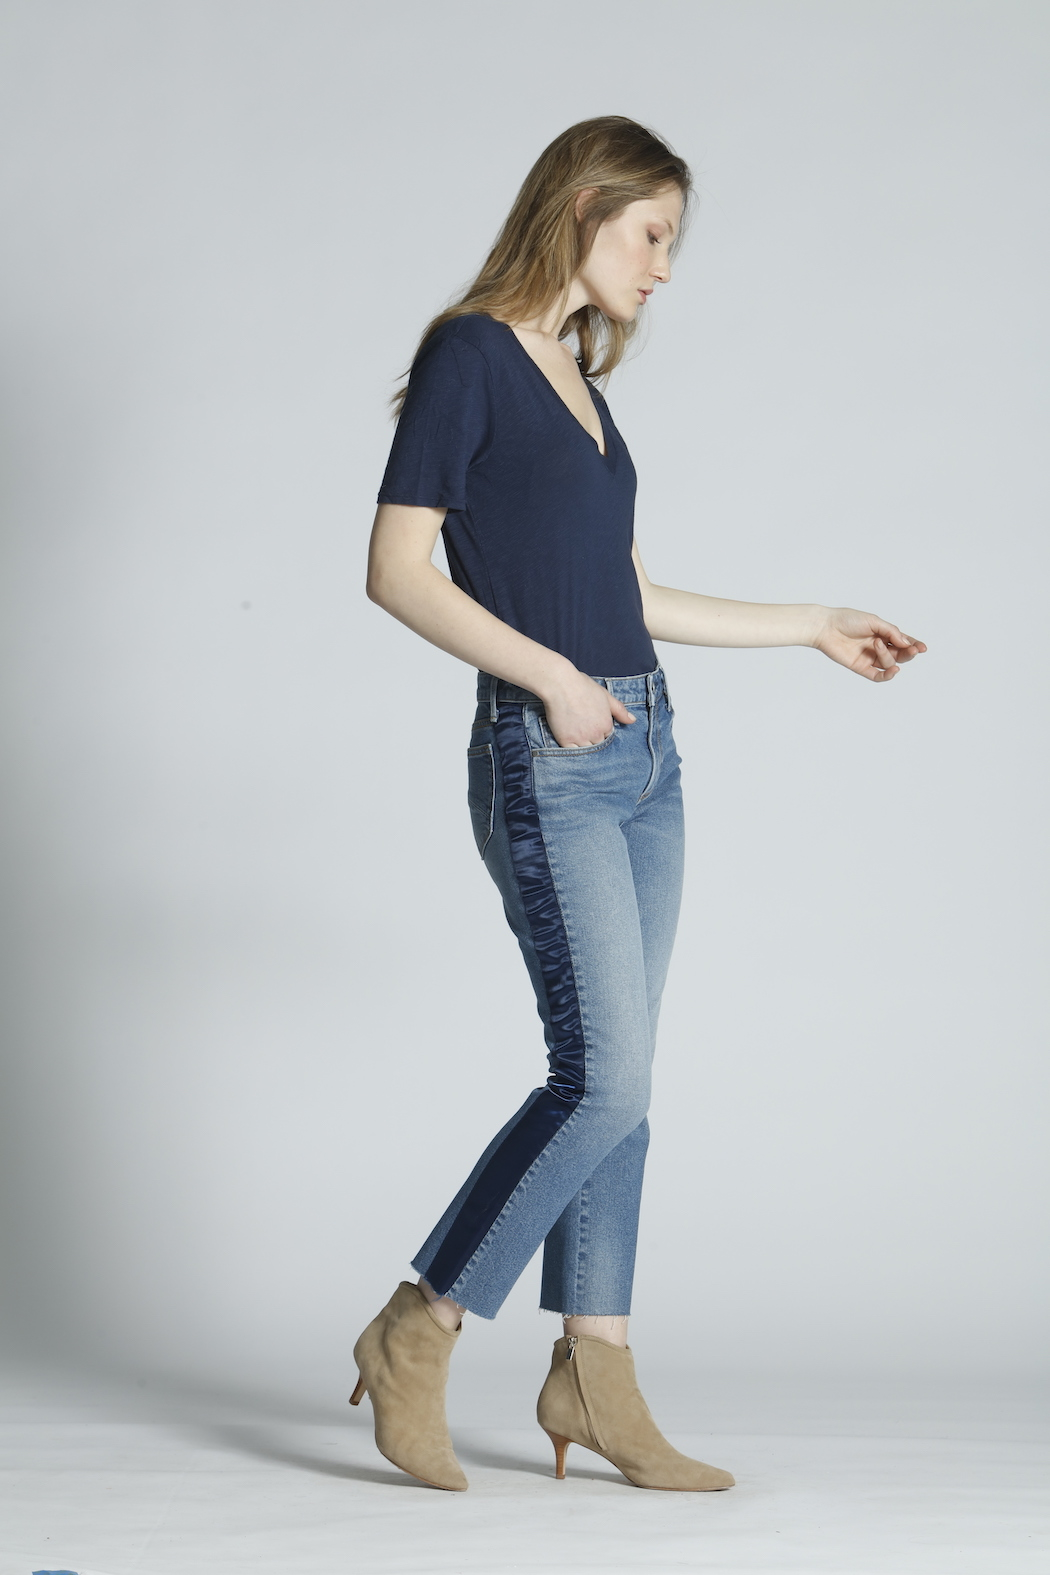 Driftwood Candace Satin Stripe Jeans - Main Image